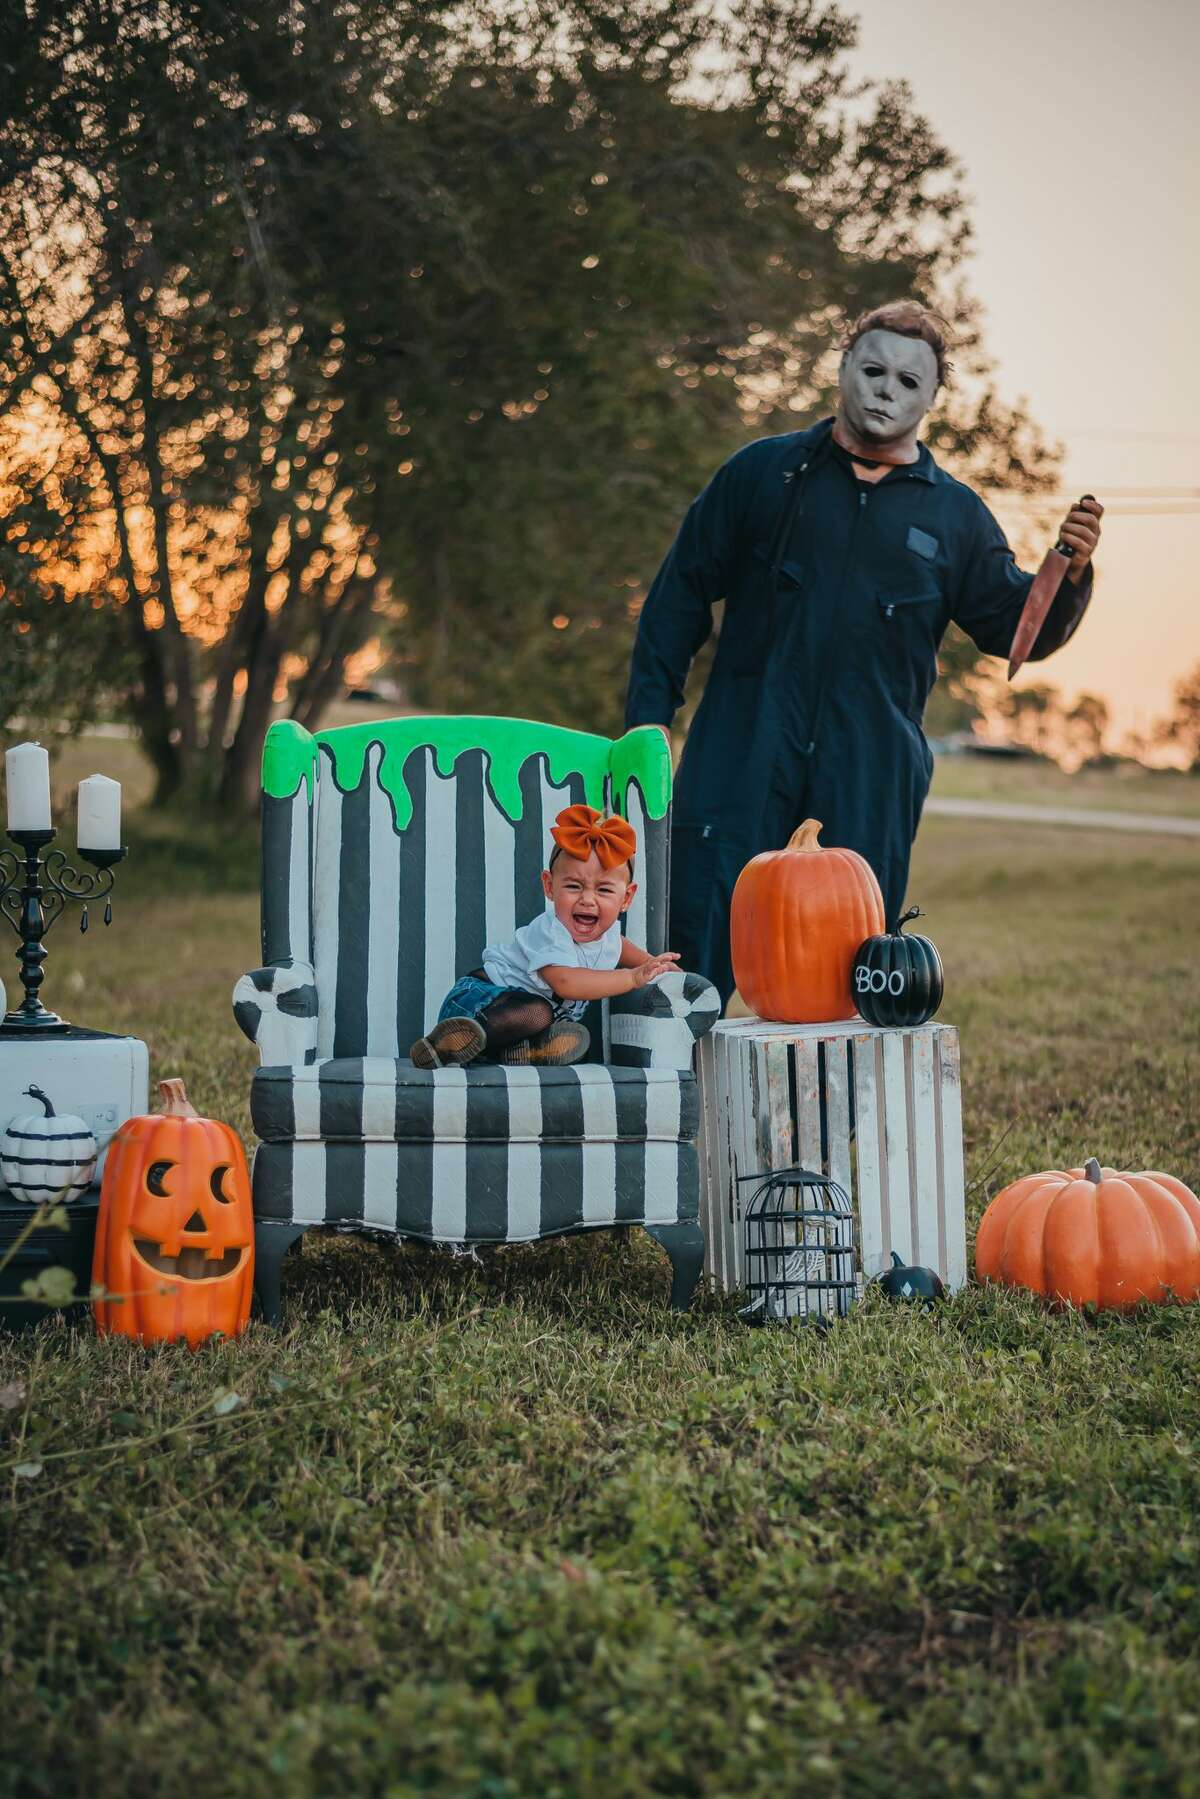 Alix said her daughter wasn't afraid of Myers, adding that she and her partner had to encourage their daughter to run away from the spooky man in the costume.